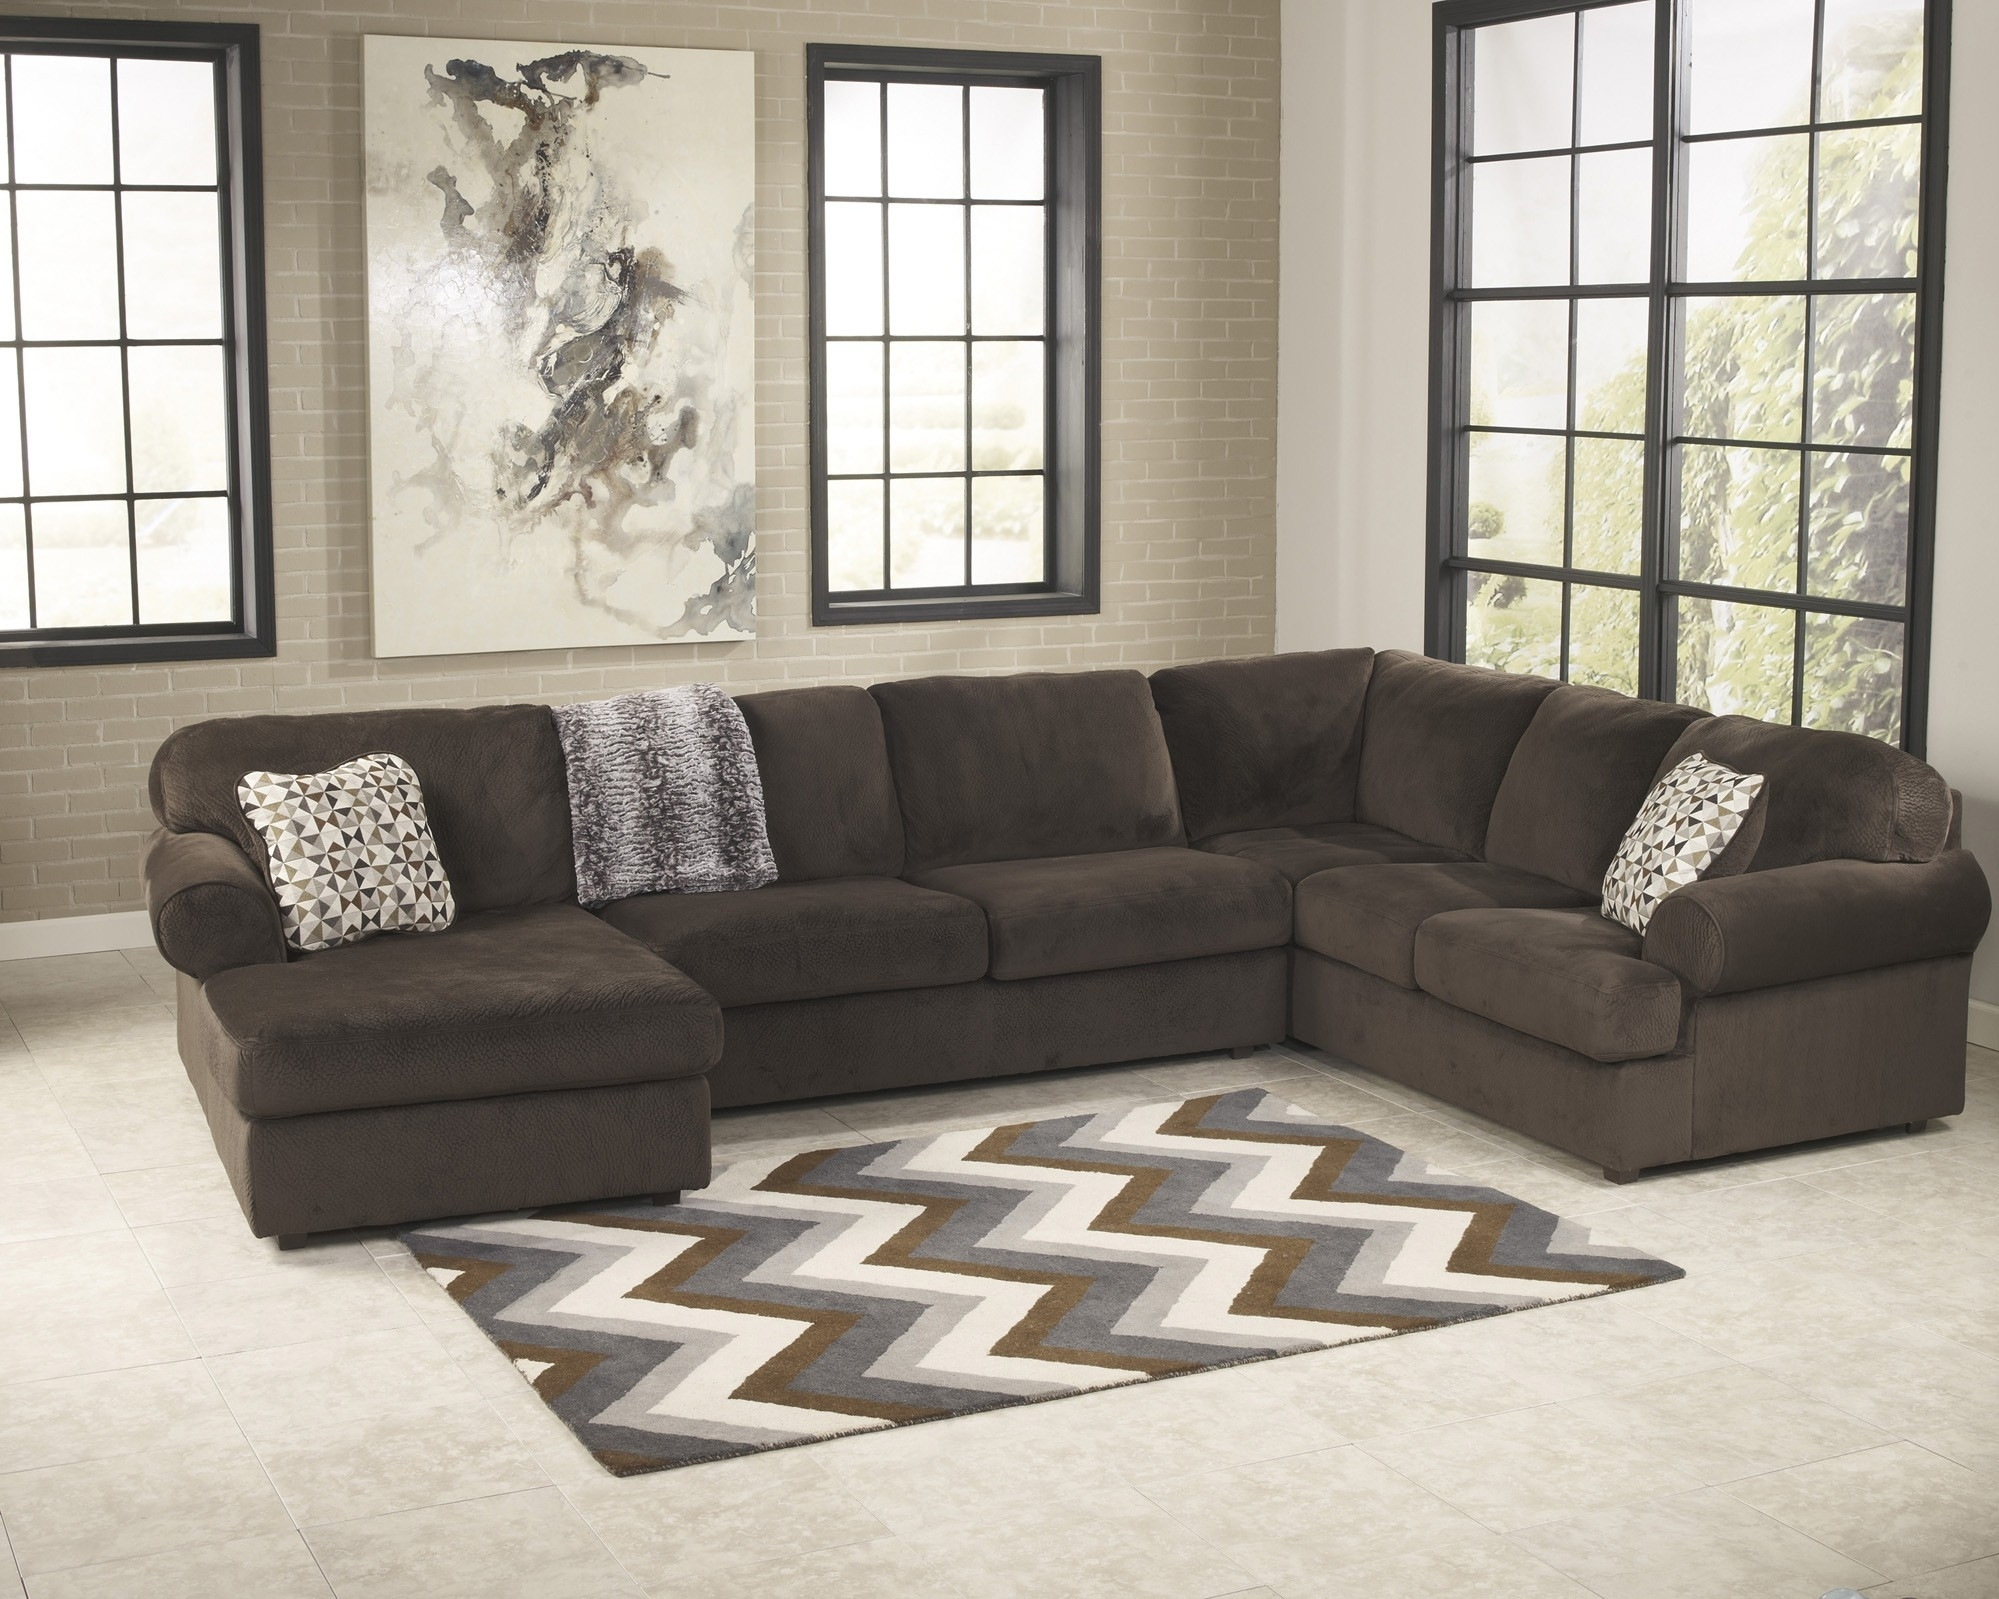 Piece Sectional Sofas Awesome Jessa Place Chocolate Sofa For Within throughout Meyer 3 Piece Sectionals With Laf Chaise (Image 18 of 30)